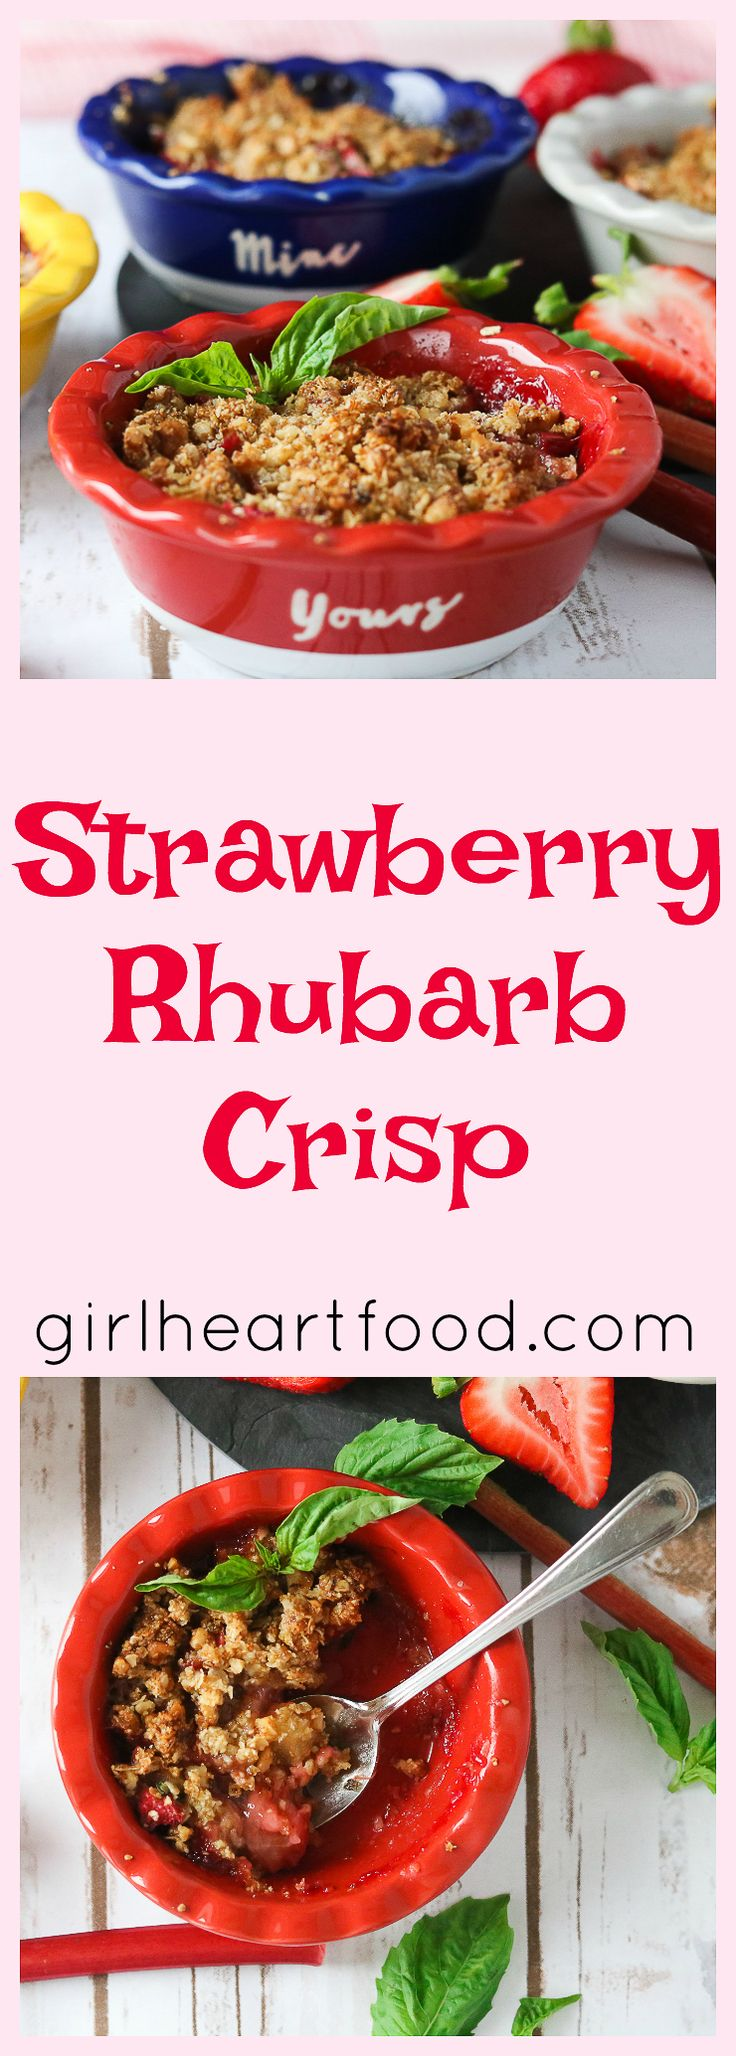 ~ Strawberry Rhubarb Crisp ~ A bit tart and a touch sweet with a buttery crumble, this Strawberry Rhubarb Crisp is a quintessential summer dessert that can be put together in minutes!  When assembled, just place in the oven until the fruit is bubbling and the top has browned.  You're going to love this one! Hi guys!  How …